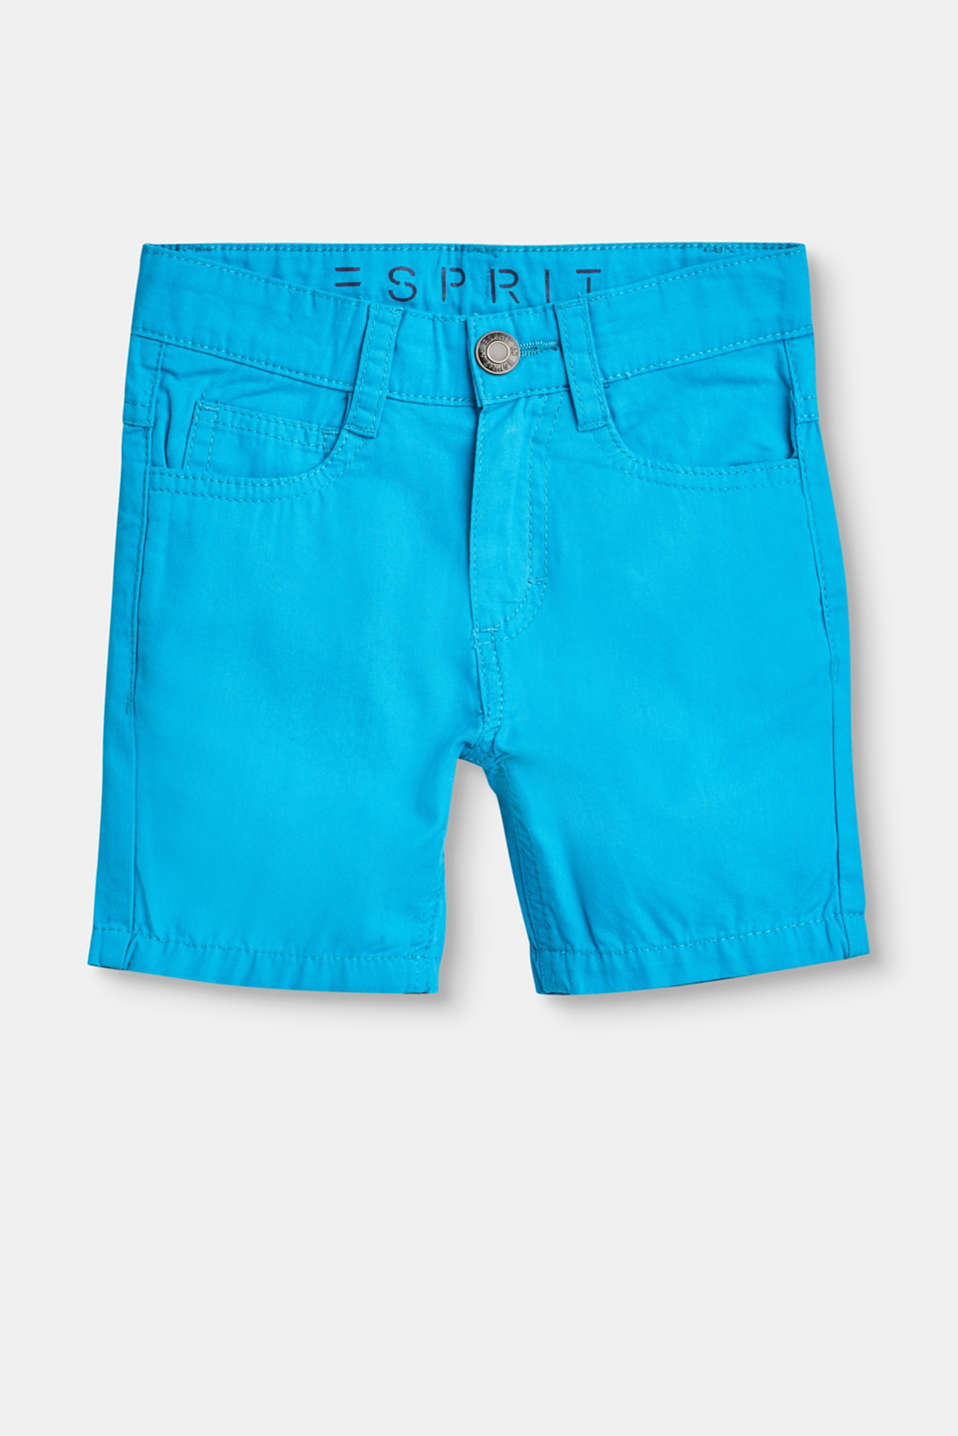 Esprit - Cotton shorts with an adjustable waistband